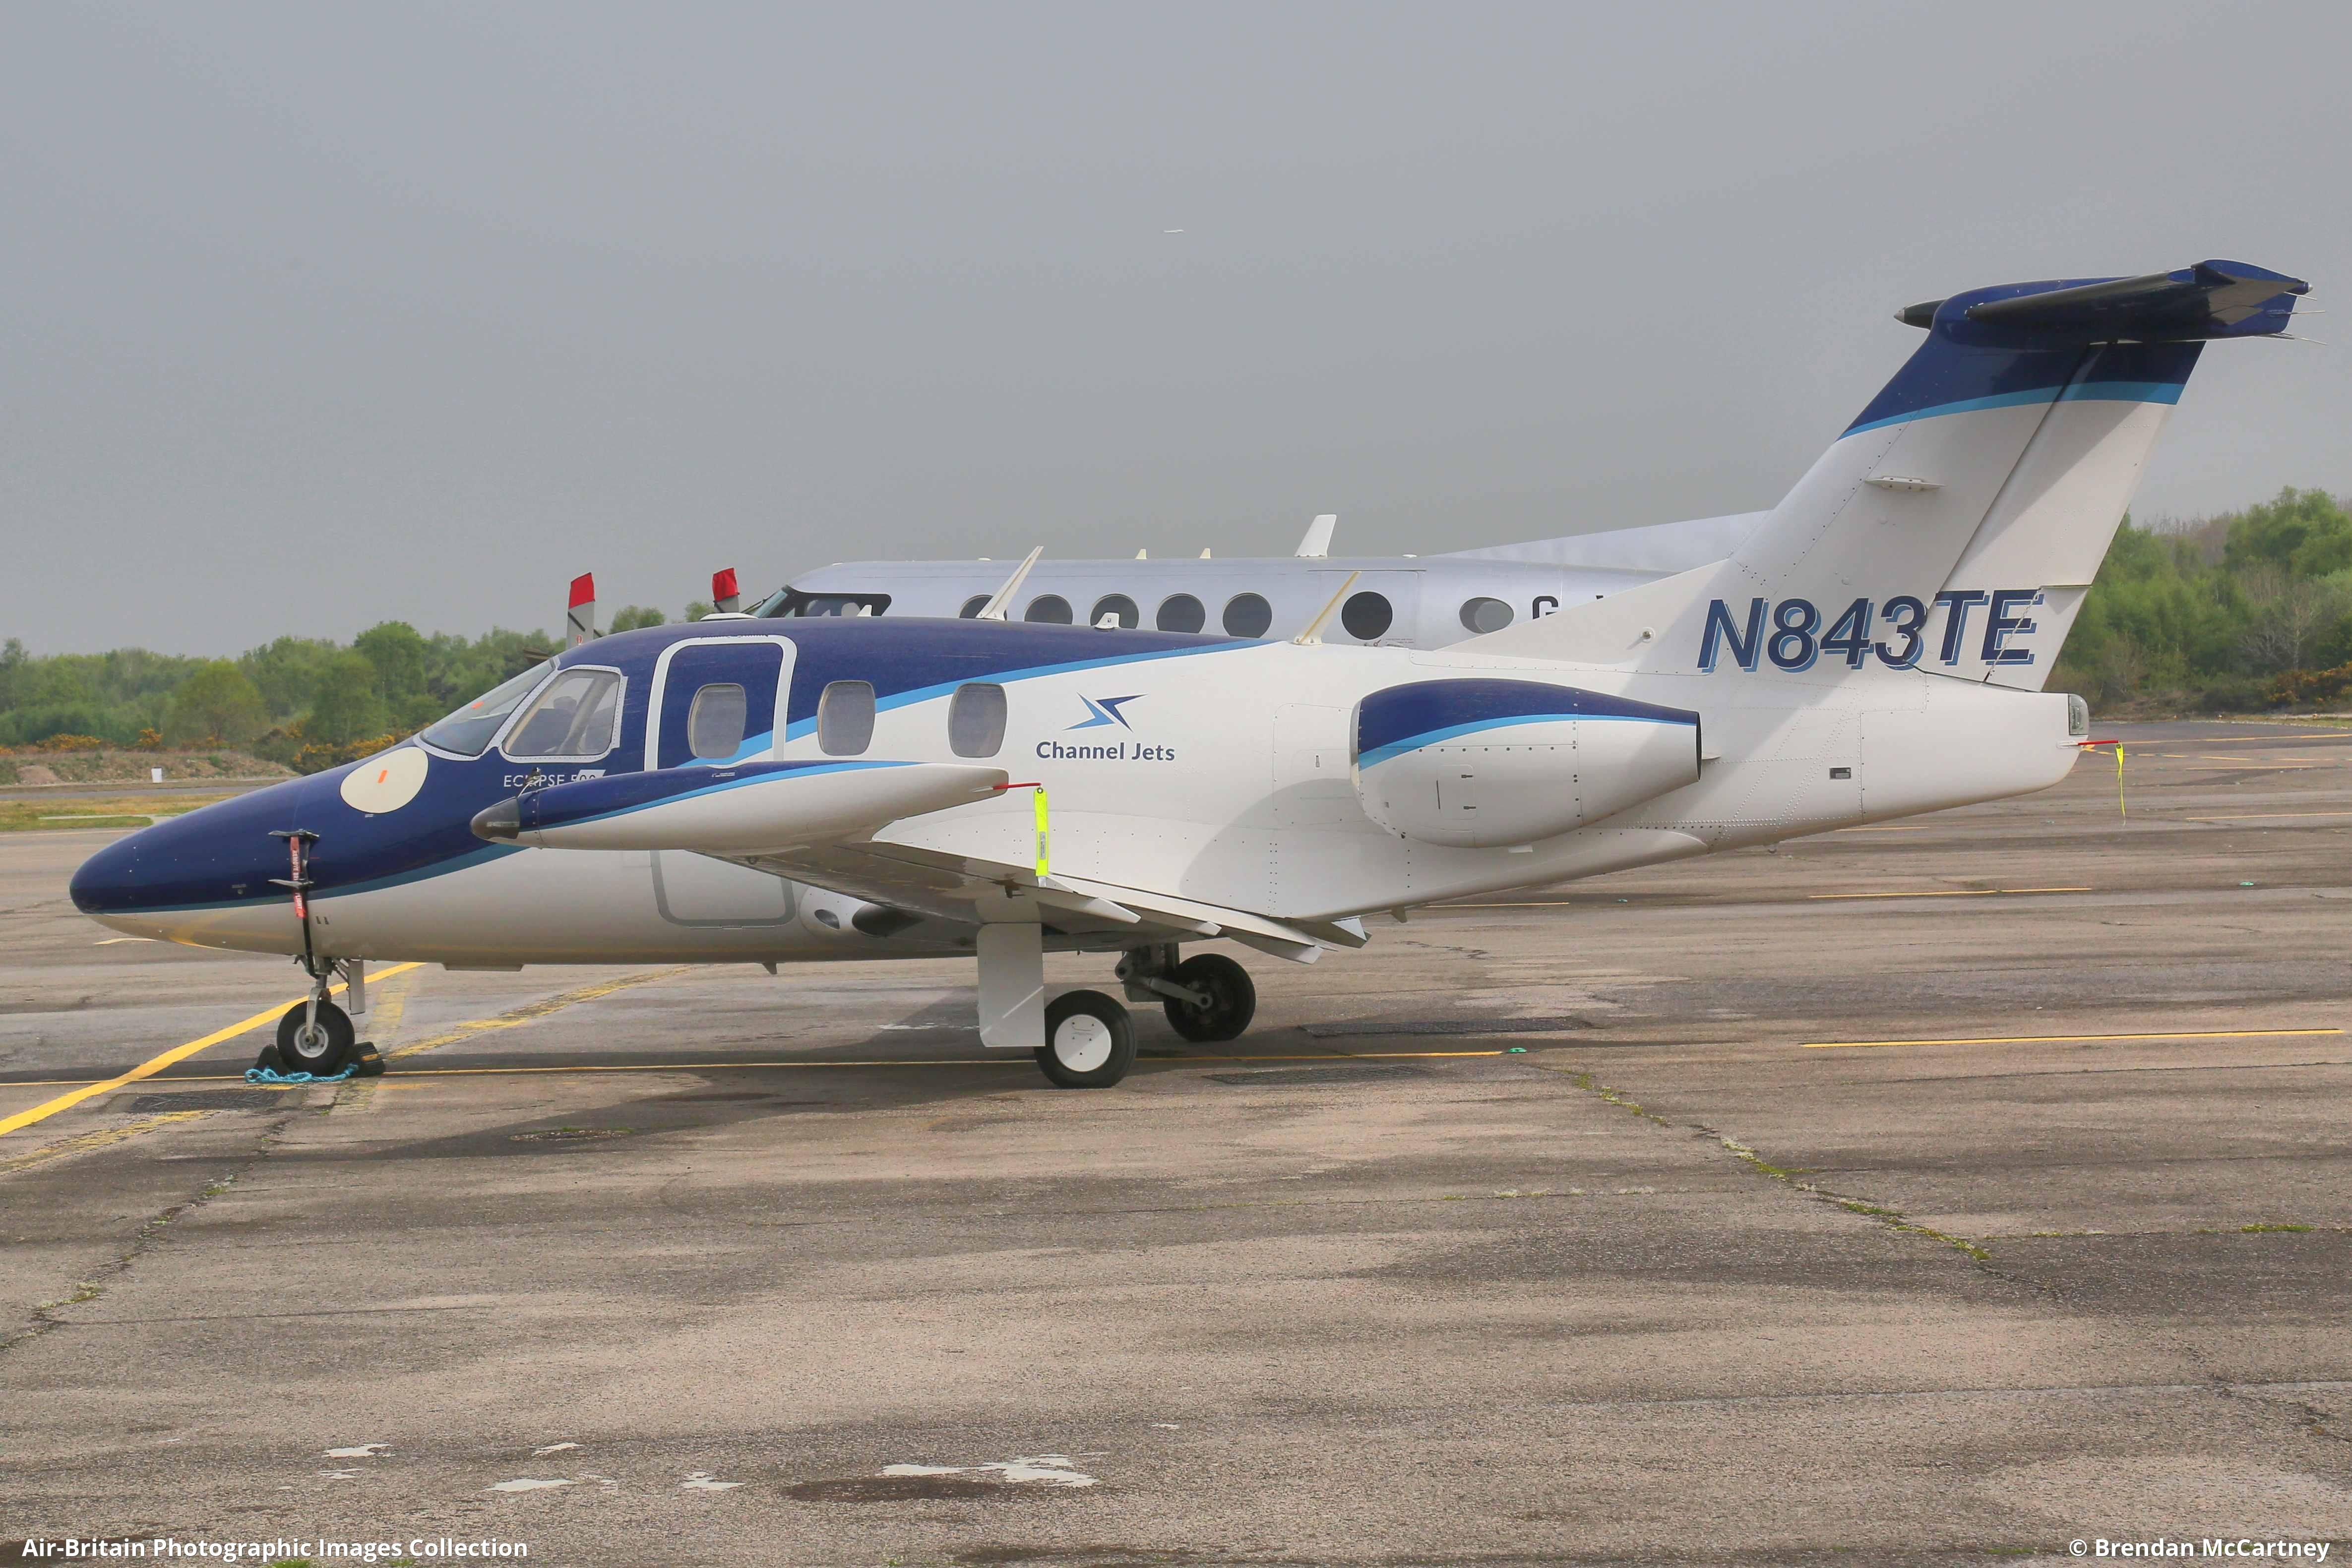 Aviation photographs of Eclipse 500 : ABPic